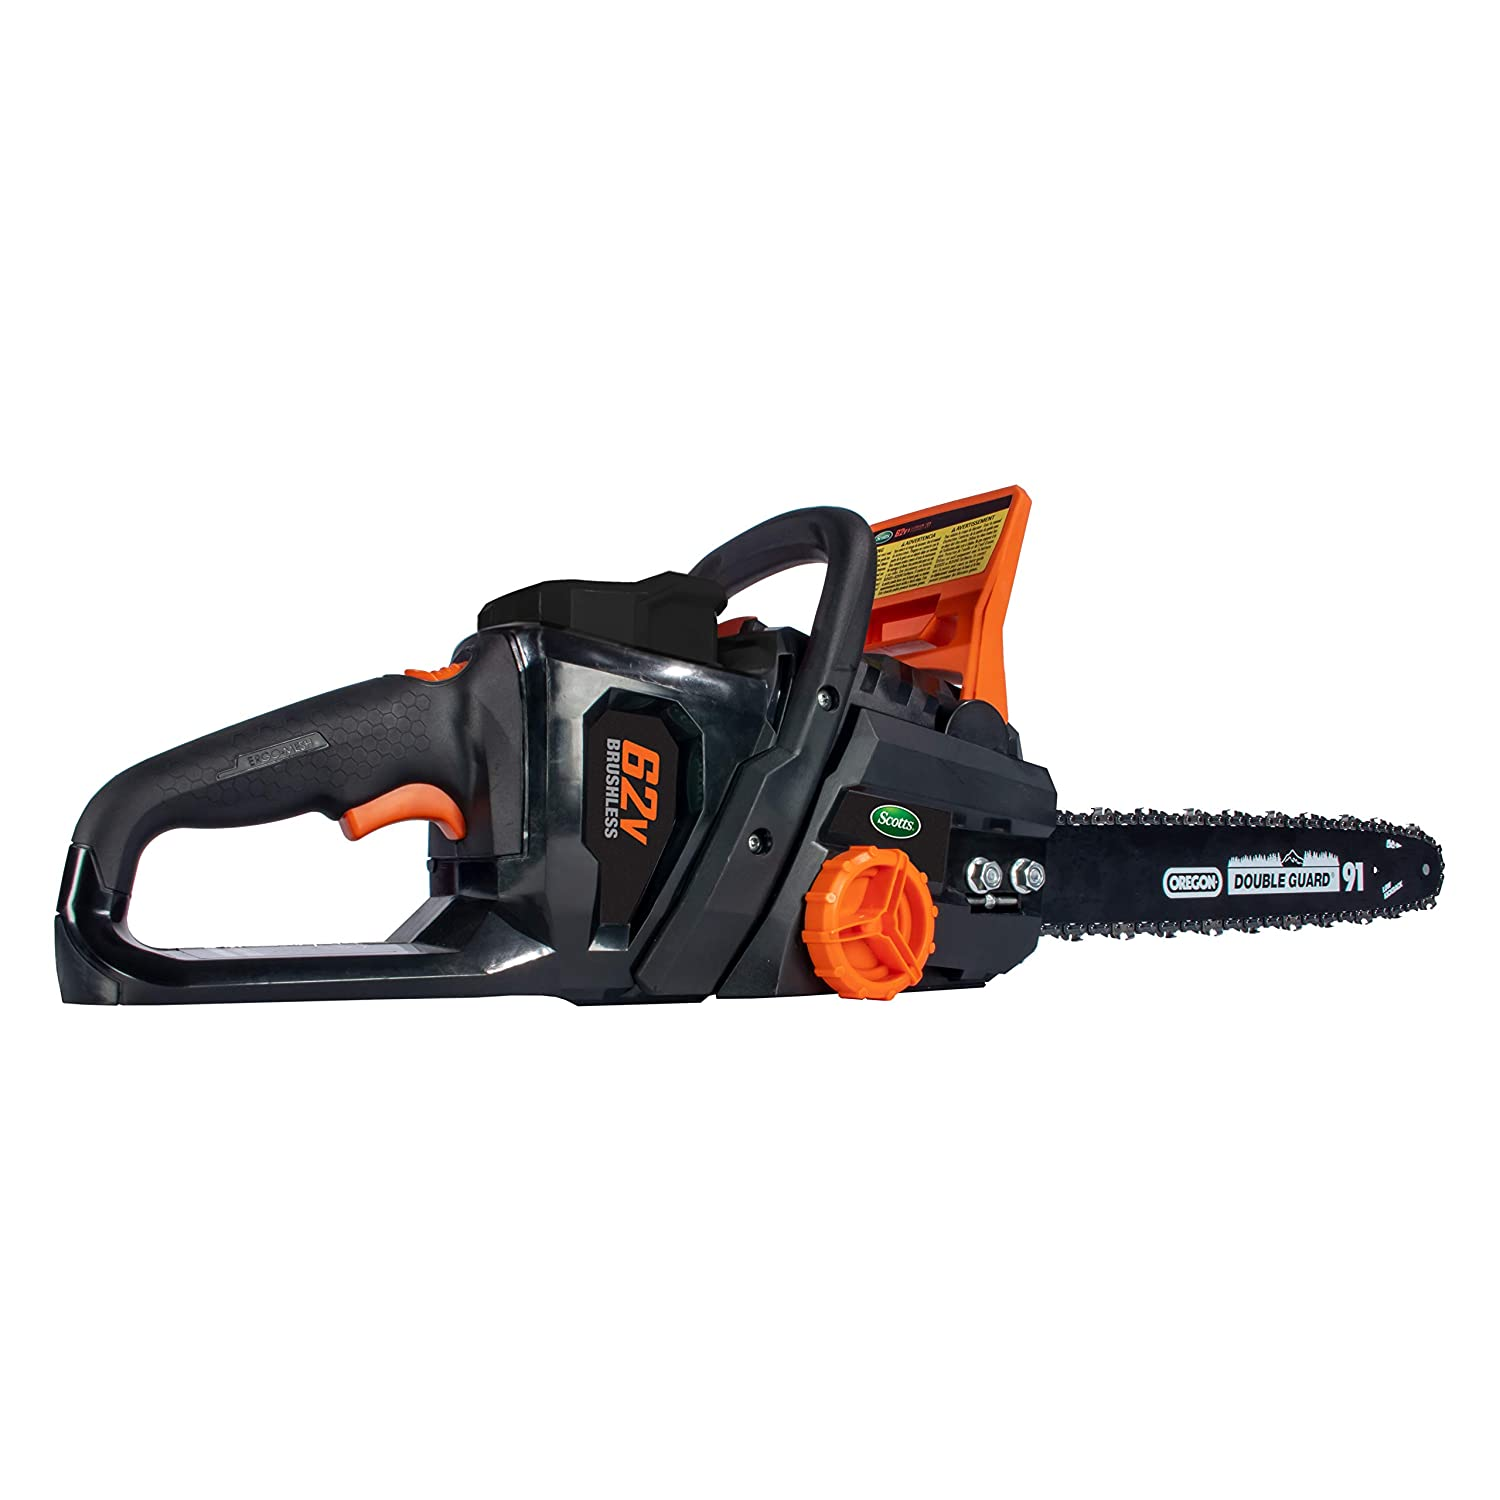 Scotts Outdoor Power Tools LCS31662S Chainsaws product image 5